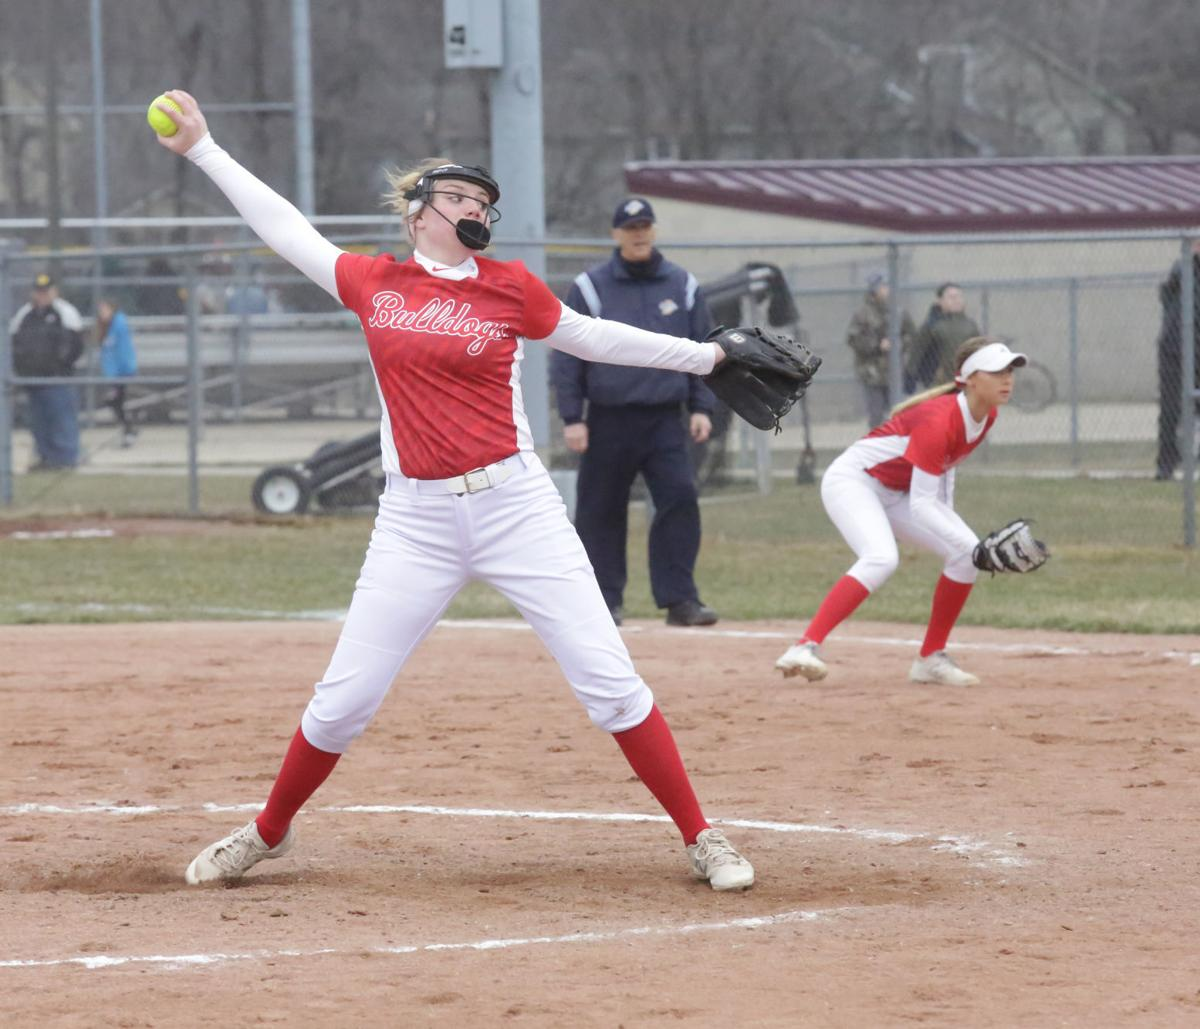 Bulldogs beat the Trojans in softball